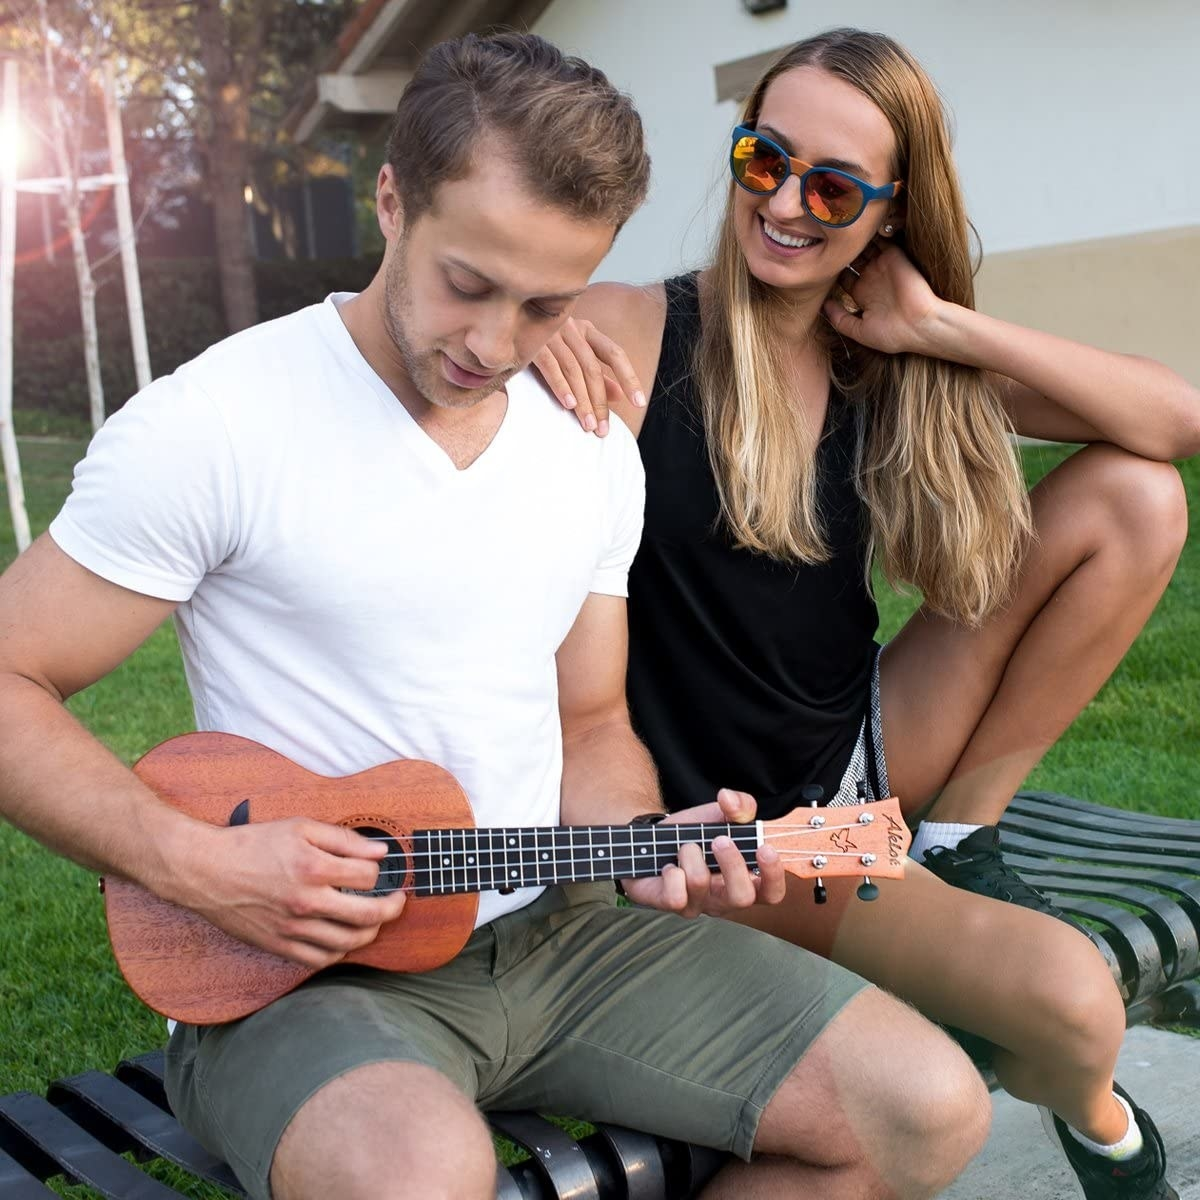 A person playing the ukulele for their friend in a park